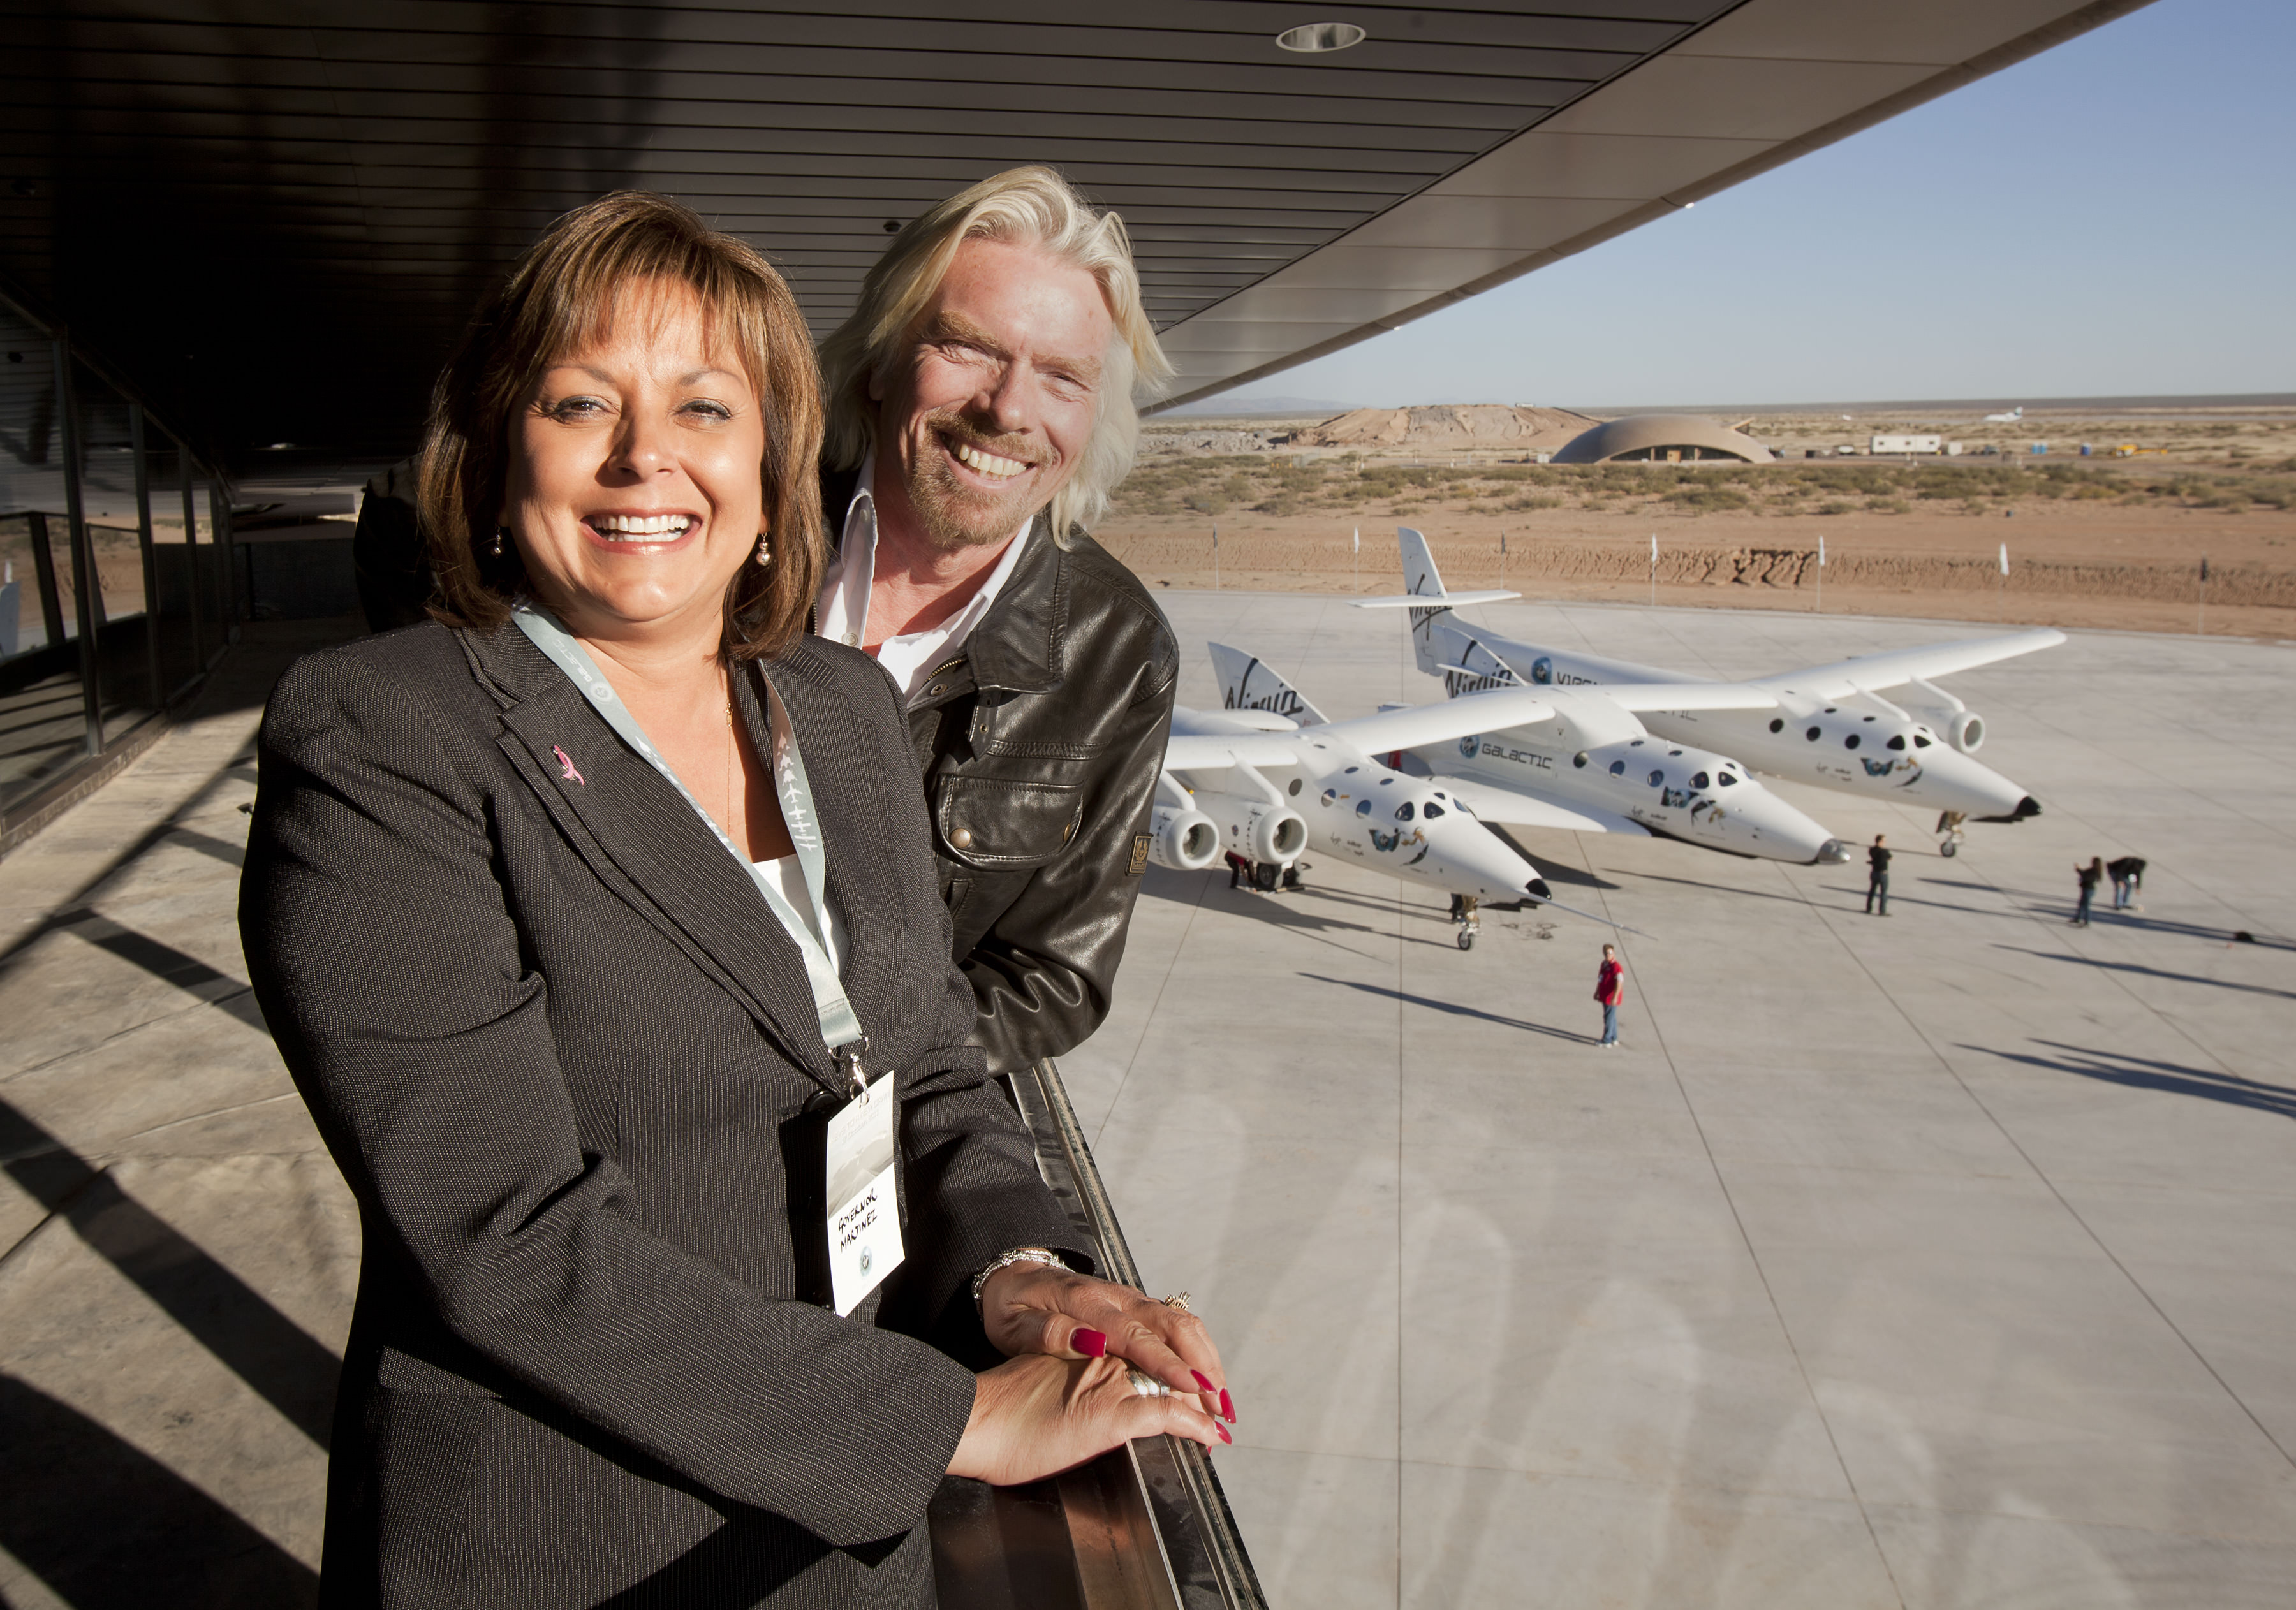 New Mexico Governor Susana Martinez and Sir Richard Branson pose for photographer on the balcony of the new Spaceport Hangar, Monday October 17, 2011 near Las Cruces, New Mexico. It was part of a dedication and christening of the hangar to Virgin Galactic. Credit: Mark Greenberg